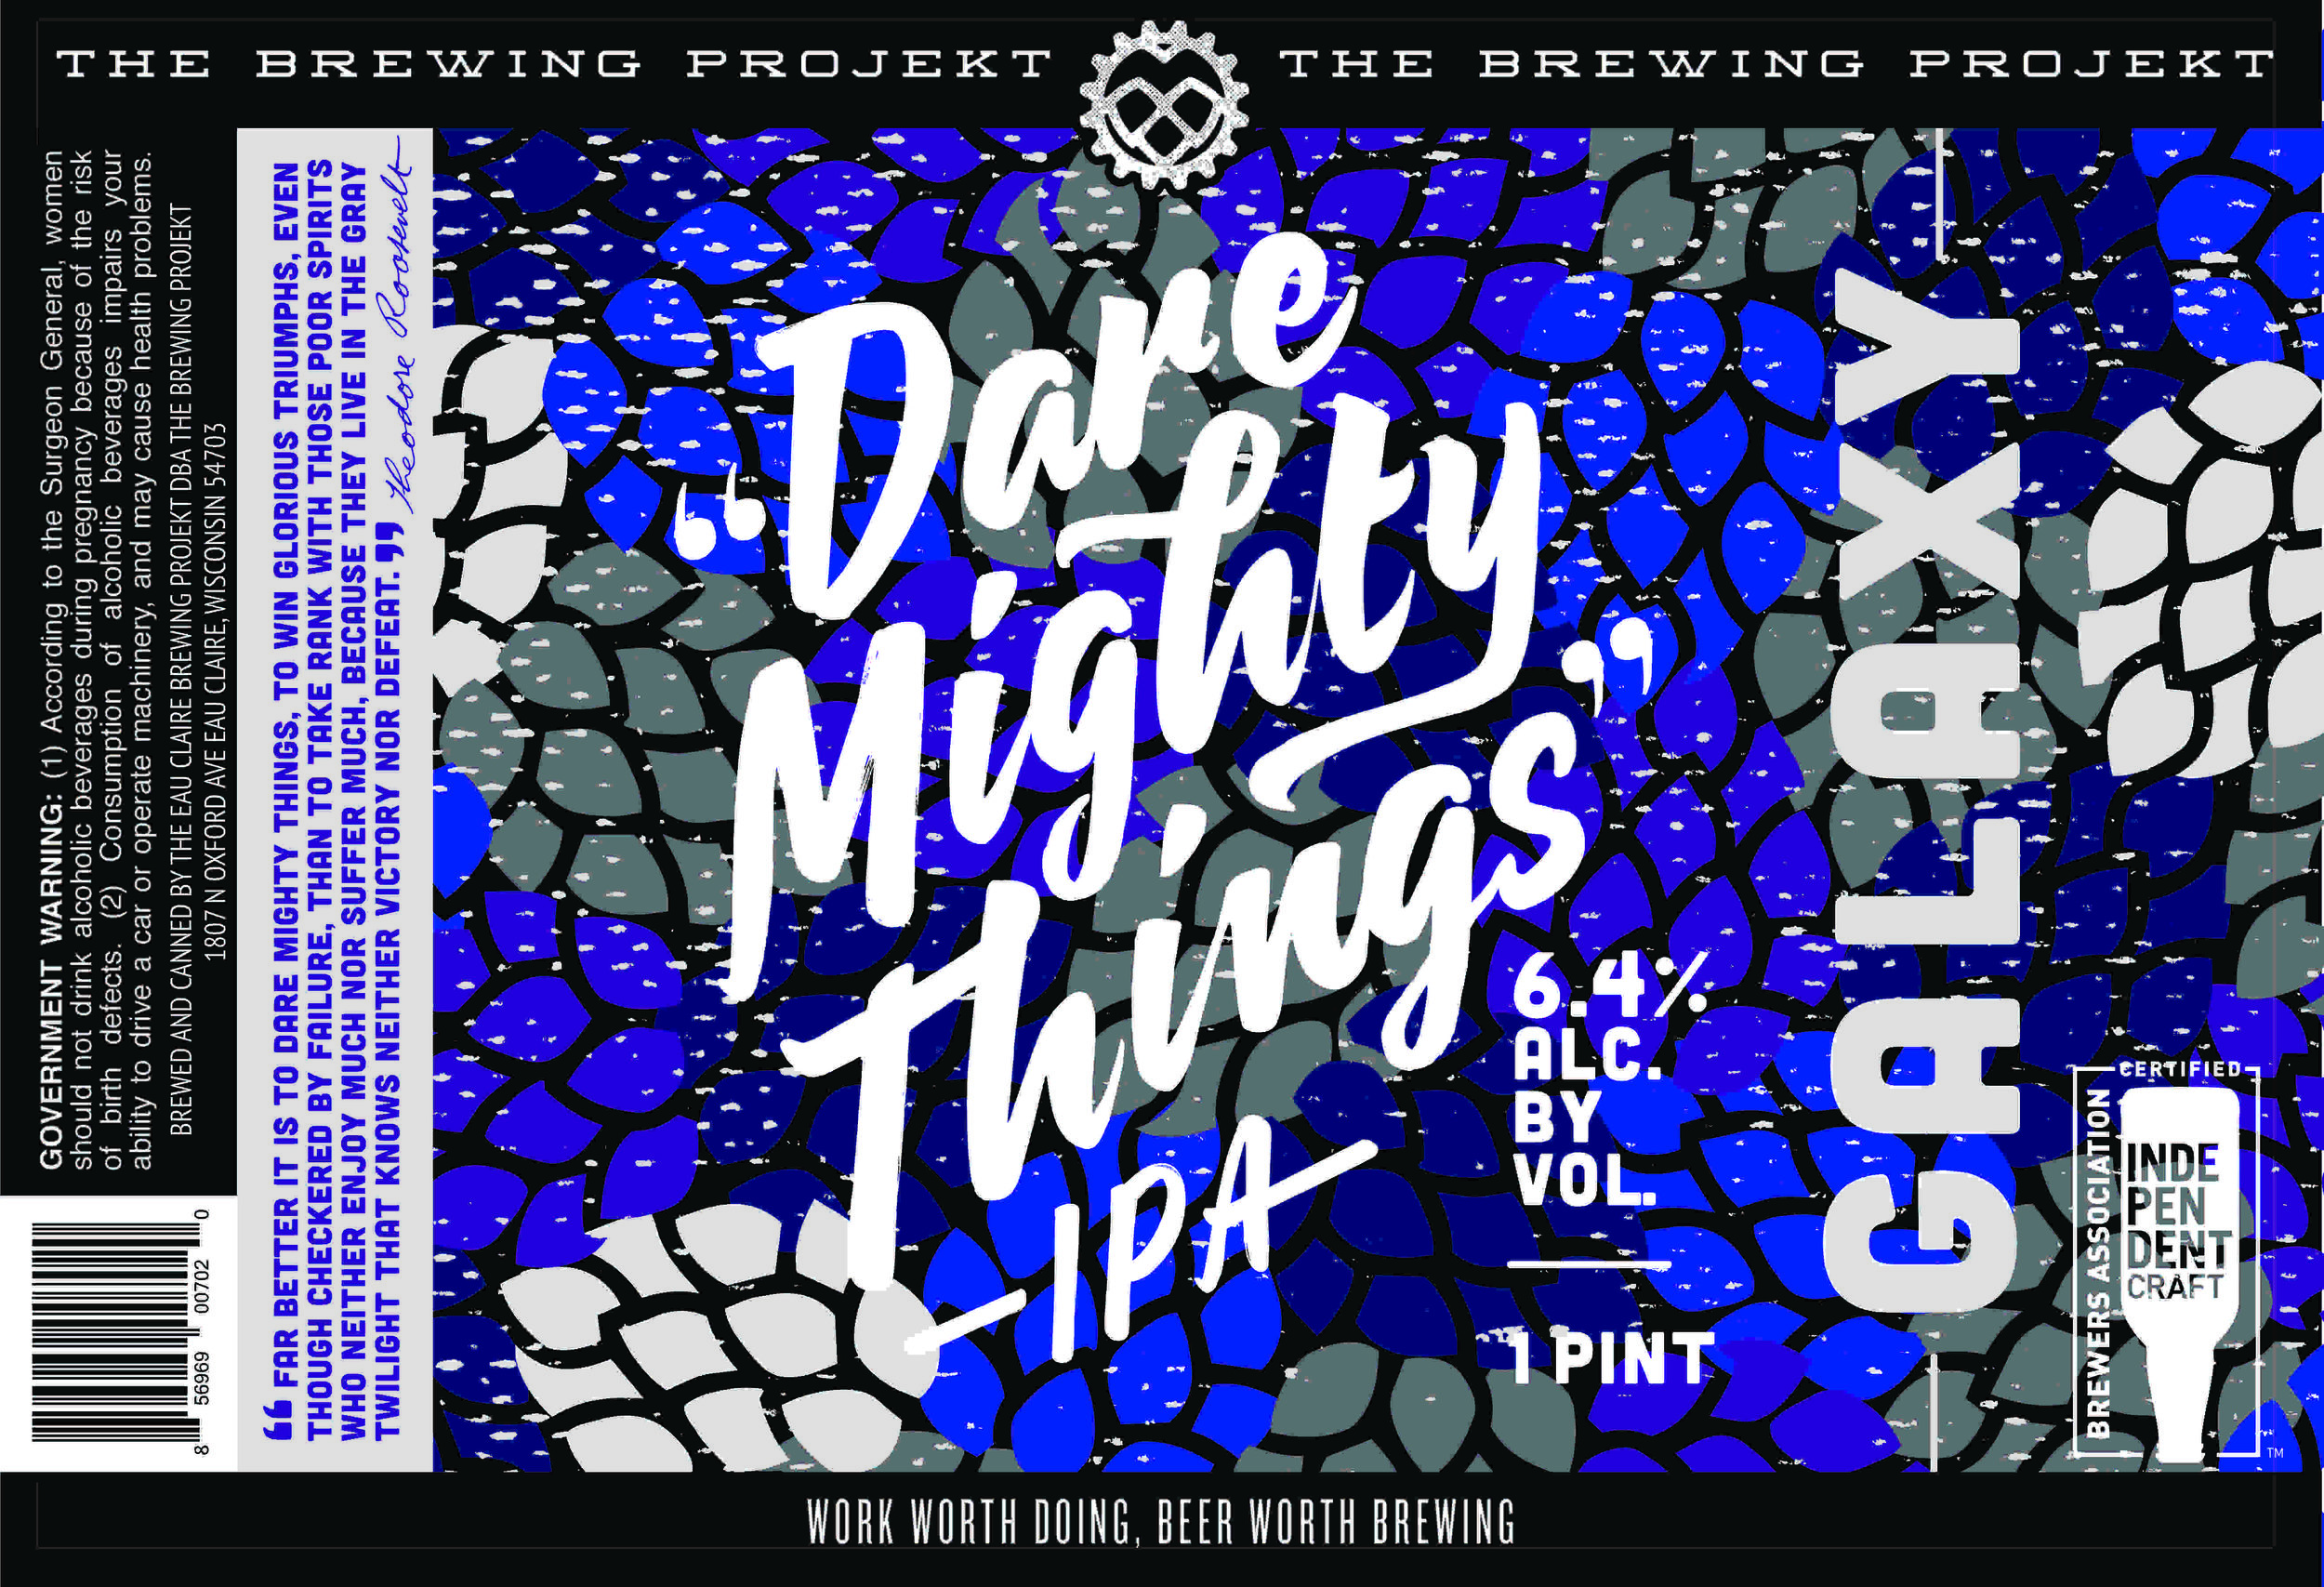 DMT - GALAXY - The next round of our single Hopped DMT series is... GALAXY! A super tropical hop from down under. Get it in cans while you can. In cans.